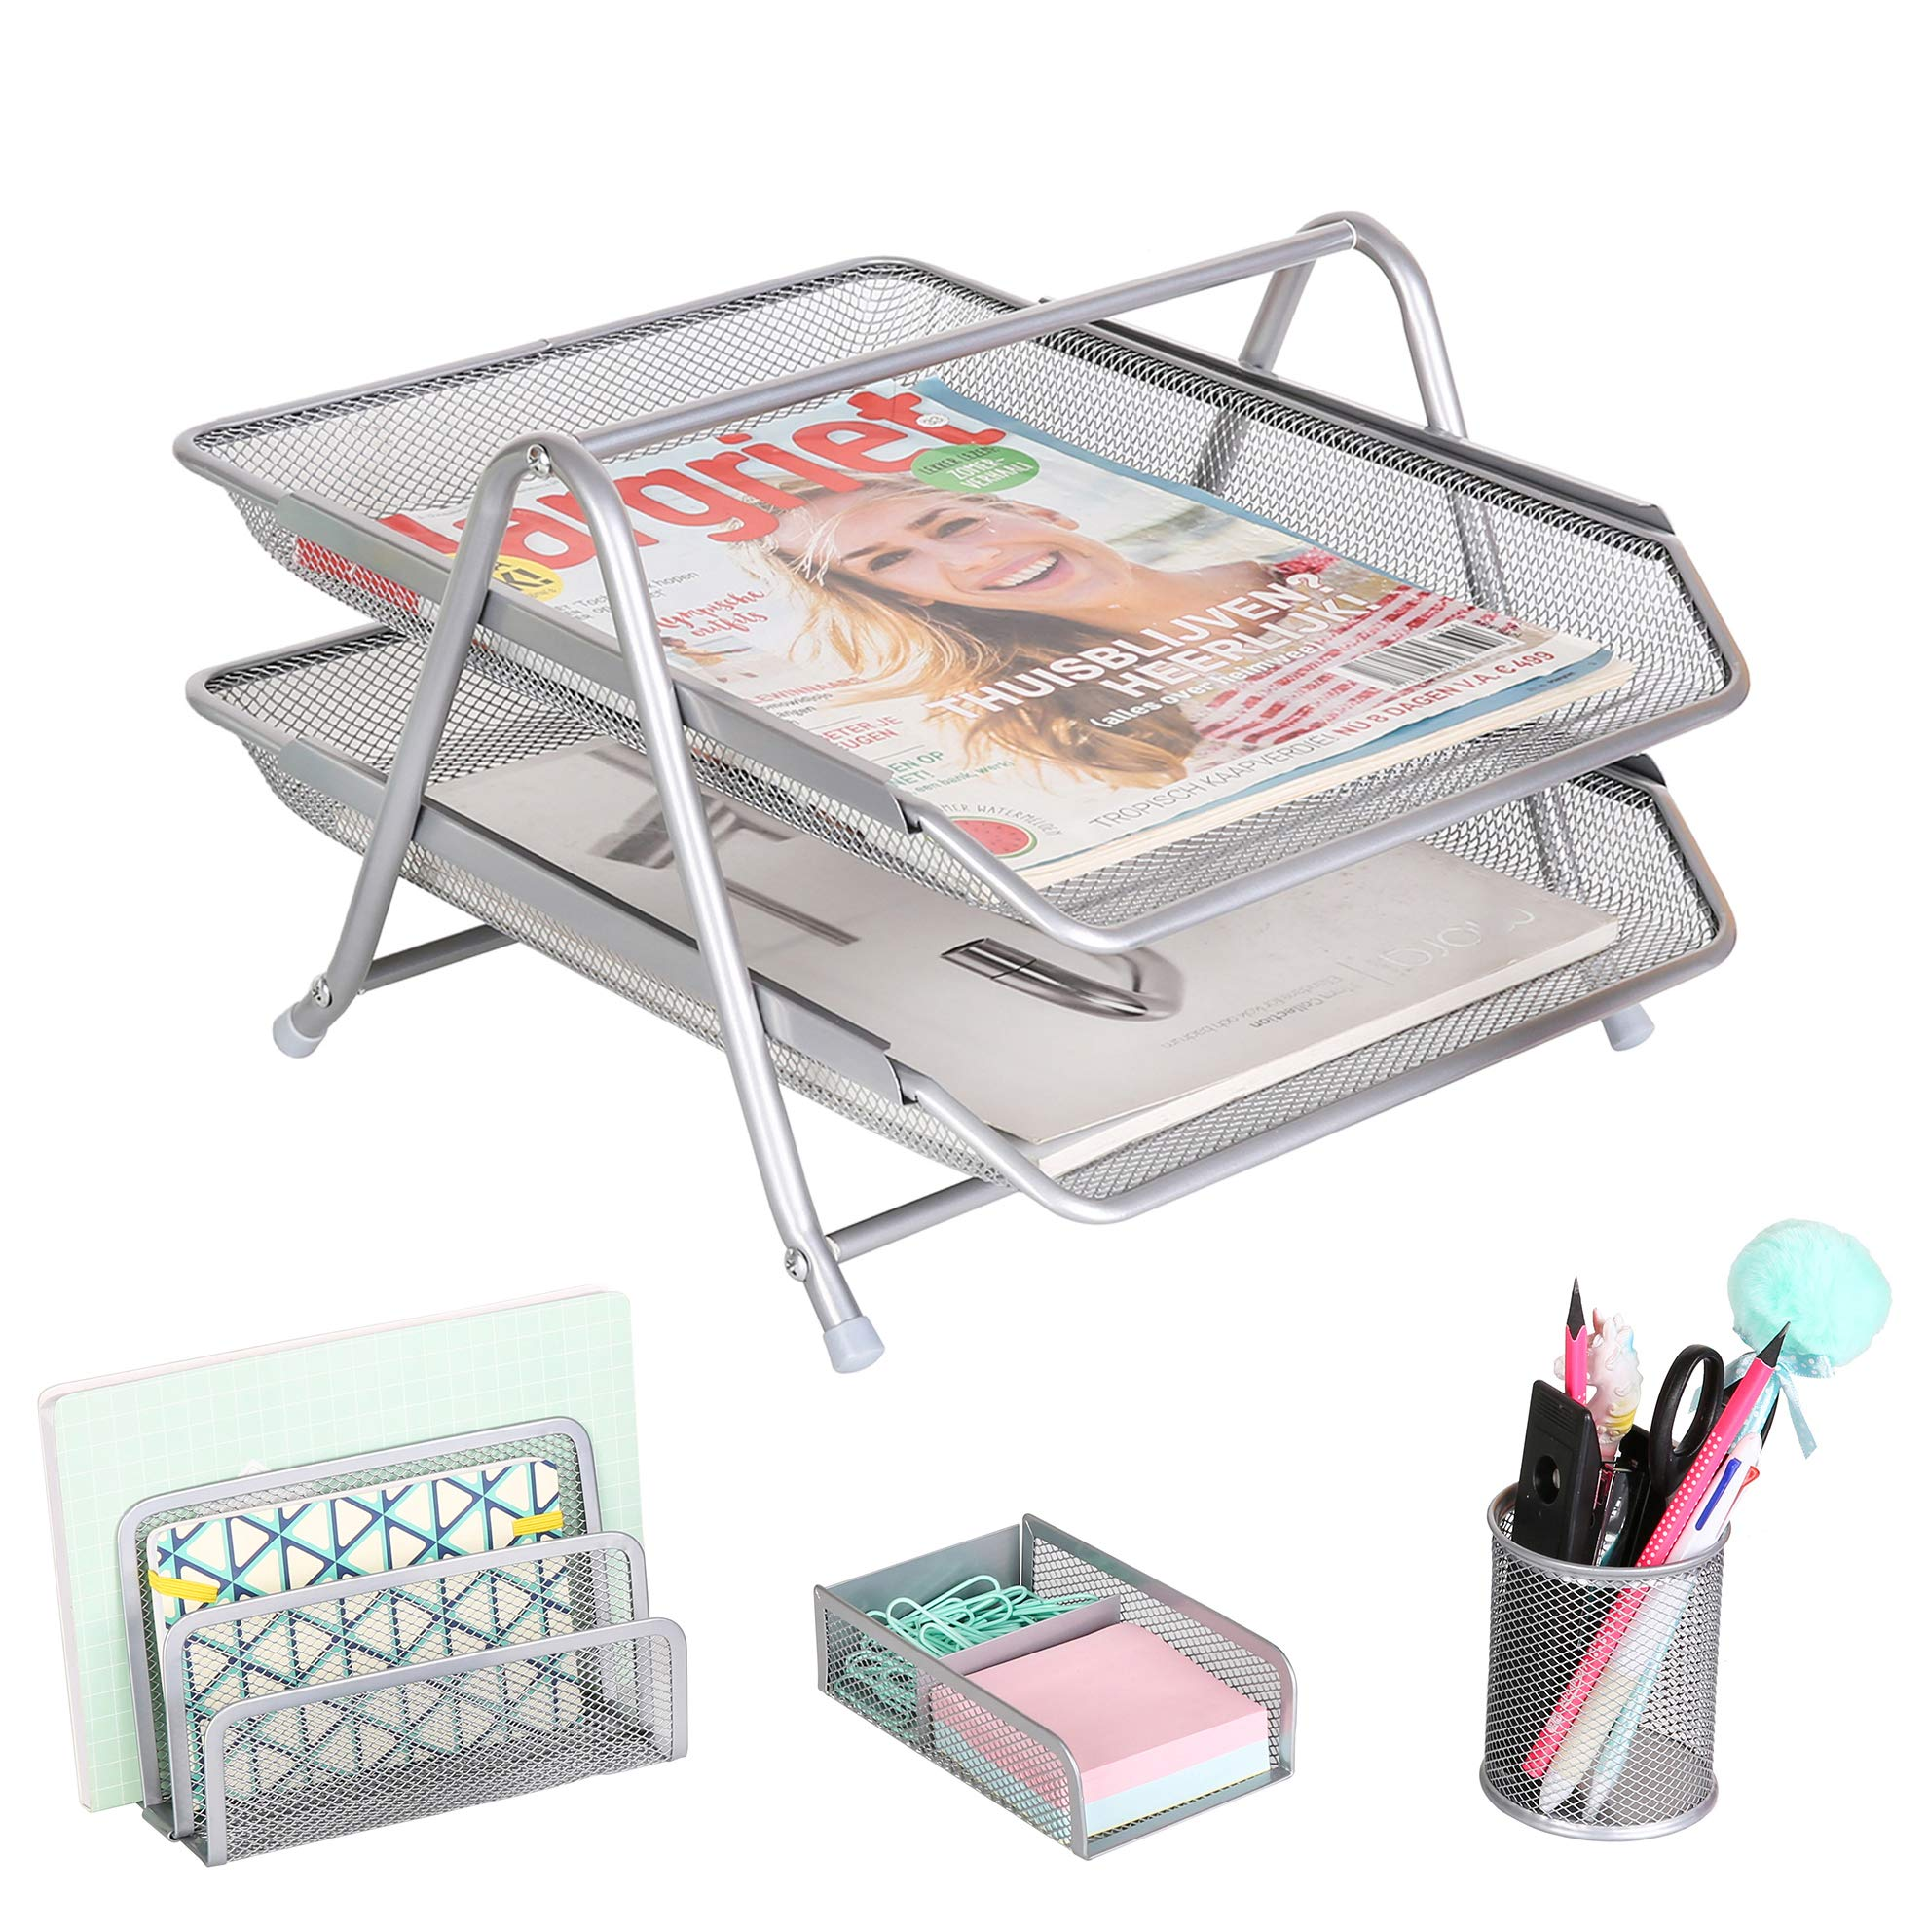 Exerz Premium Desk Organizers Mesh Office Set Accessories 4 PCS - 2 Tier Sliding Letter Tray/Filing/Paper Tray, Letter Rack, Pen Pot, Clips & Memo Pad Holder (EX2480 Silver) by Exerz